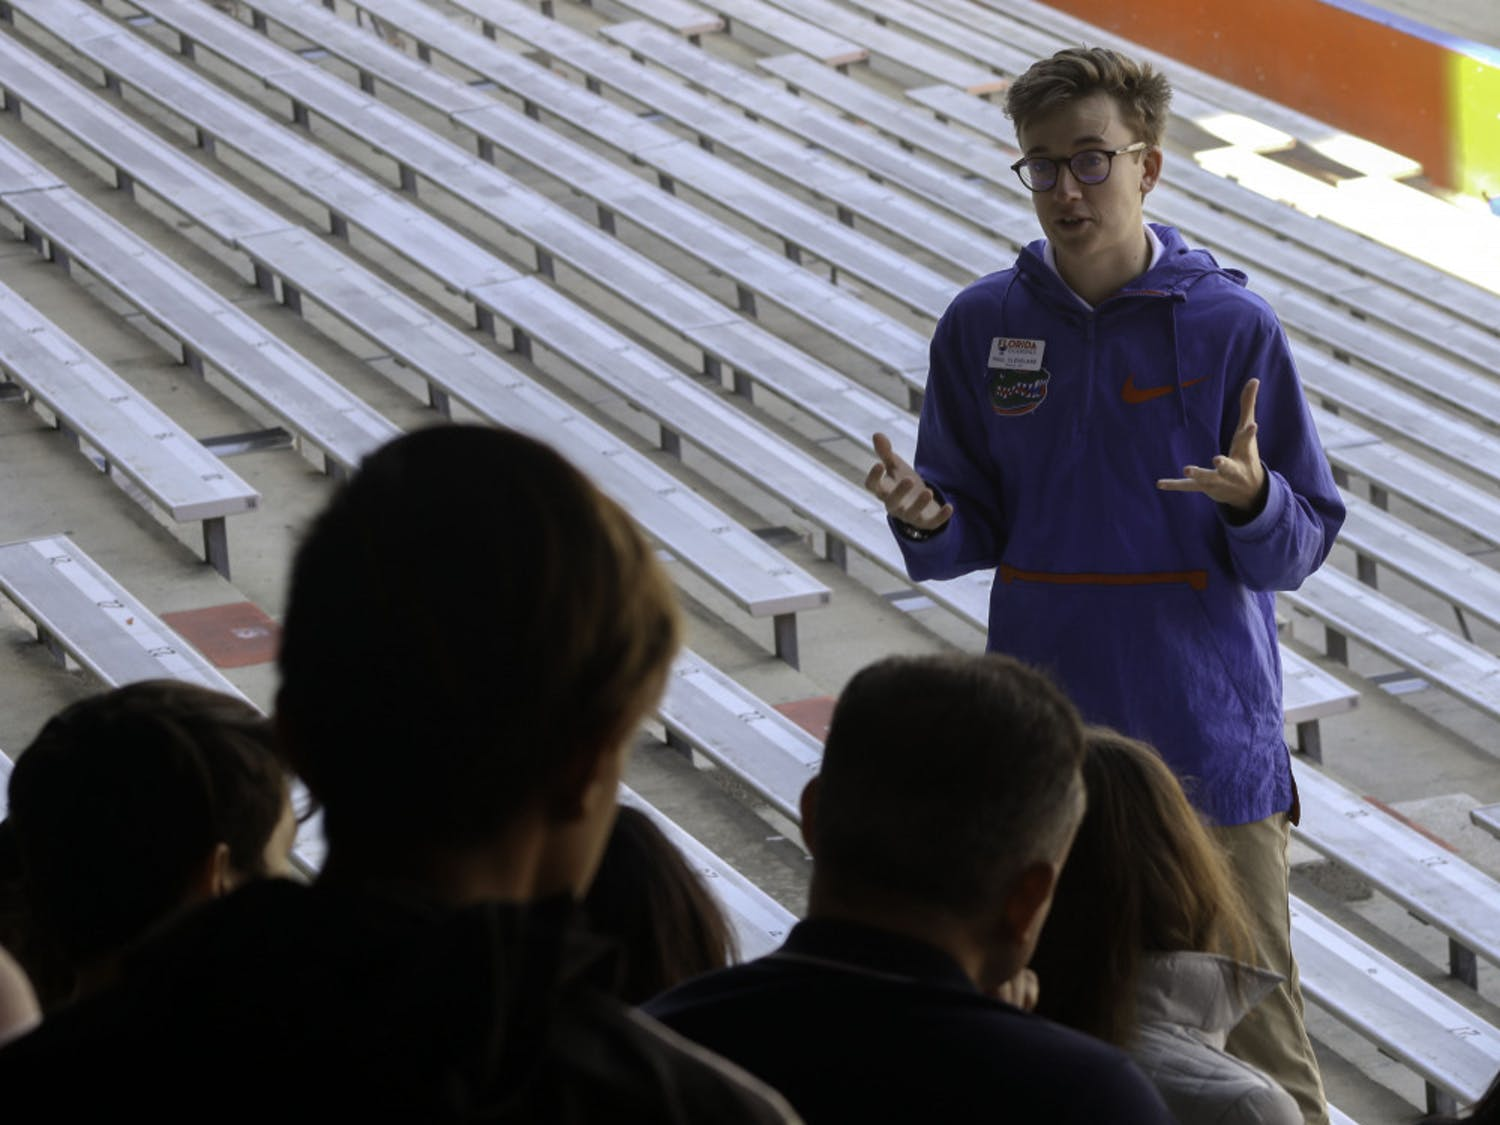 Paul Cleveland, a 20-year-old UF economics junior and Cicerone, talks to a tour group in The Swamp about the football program at the school on Friday. Chris Day / Alligator Staff